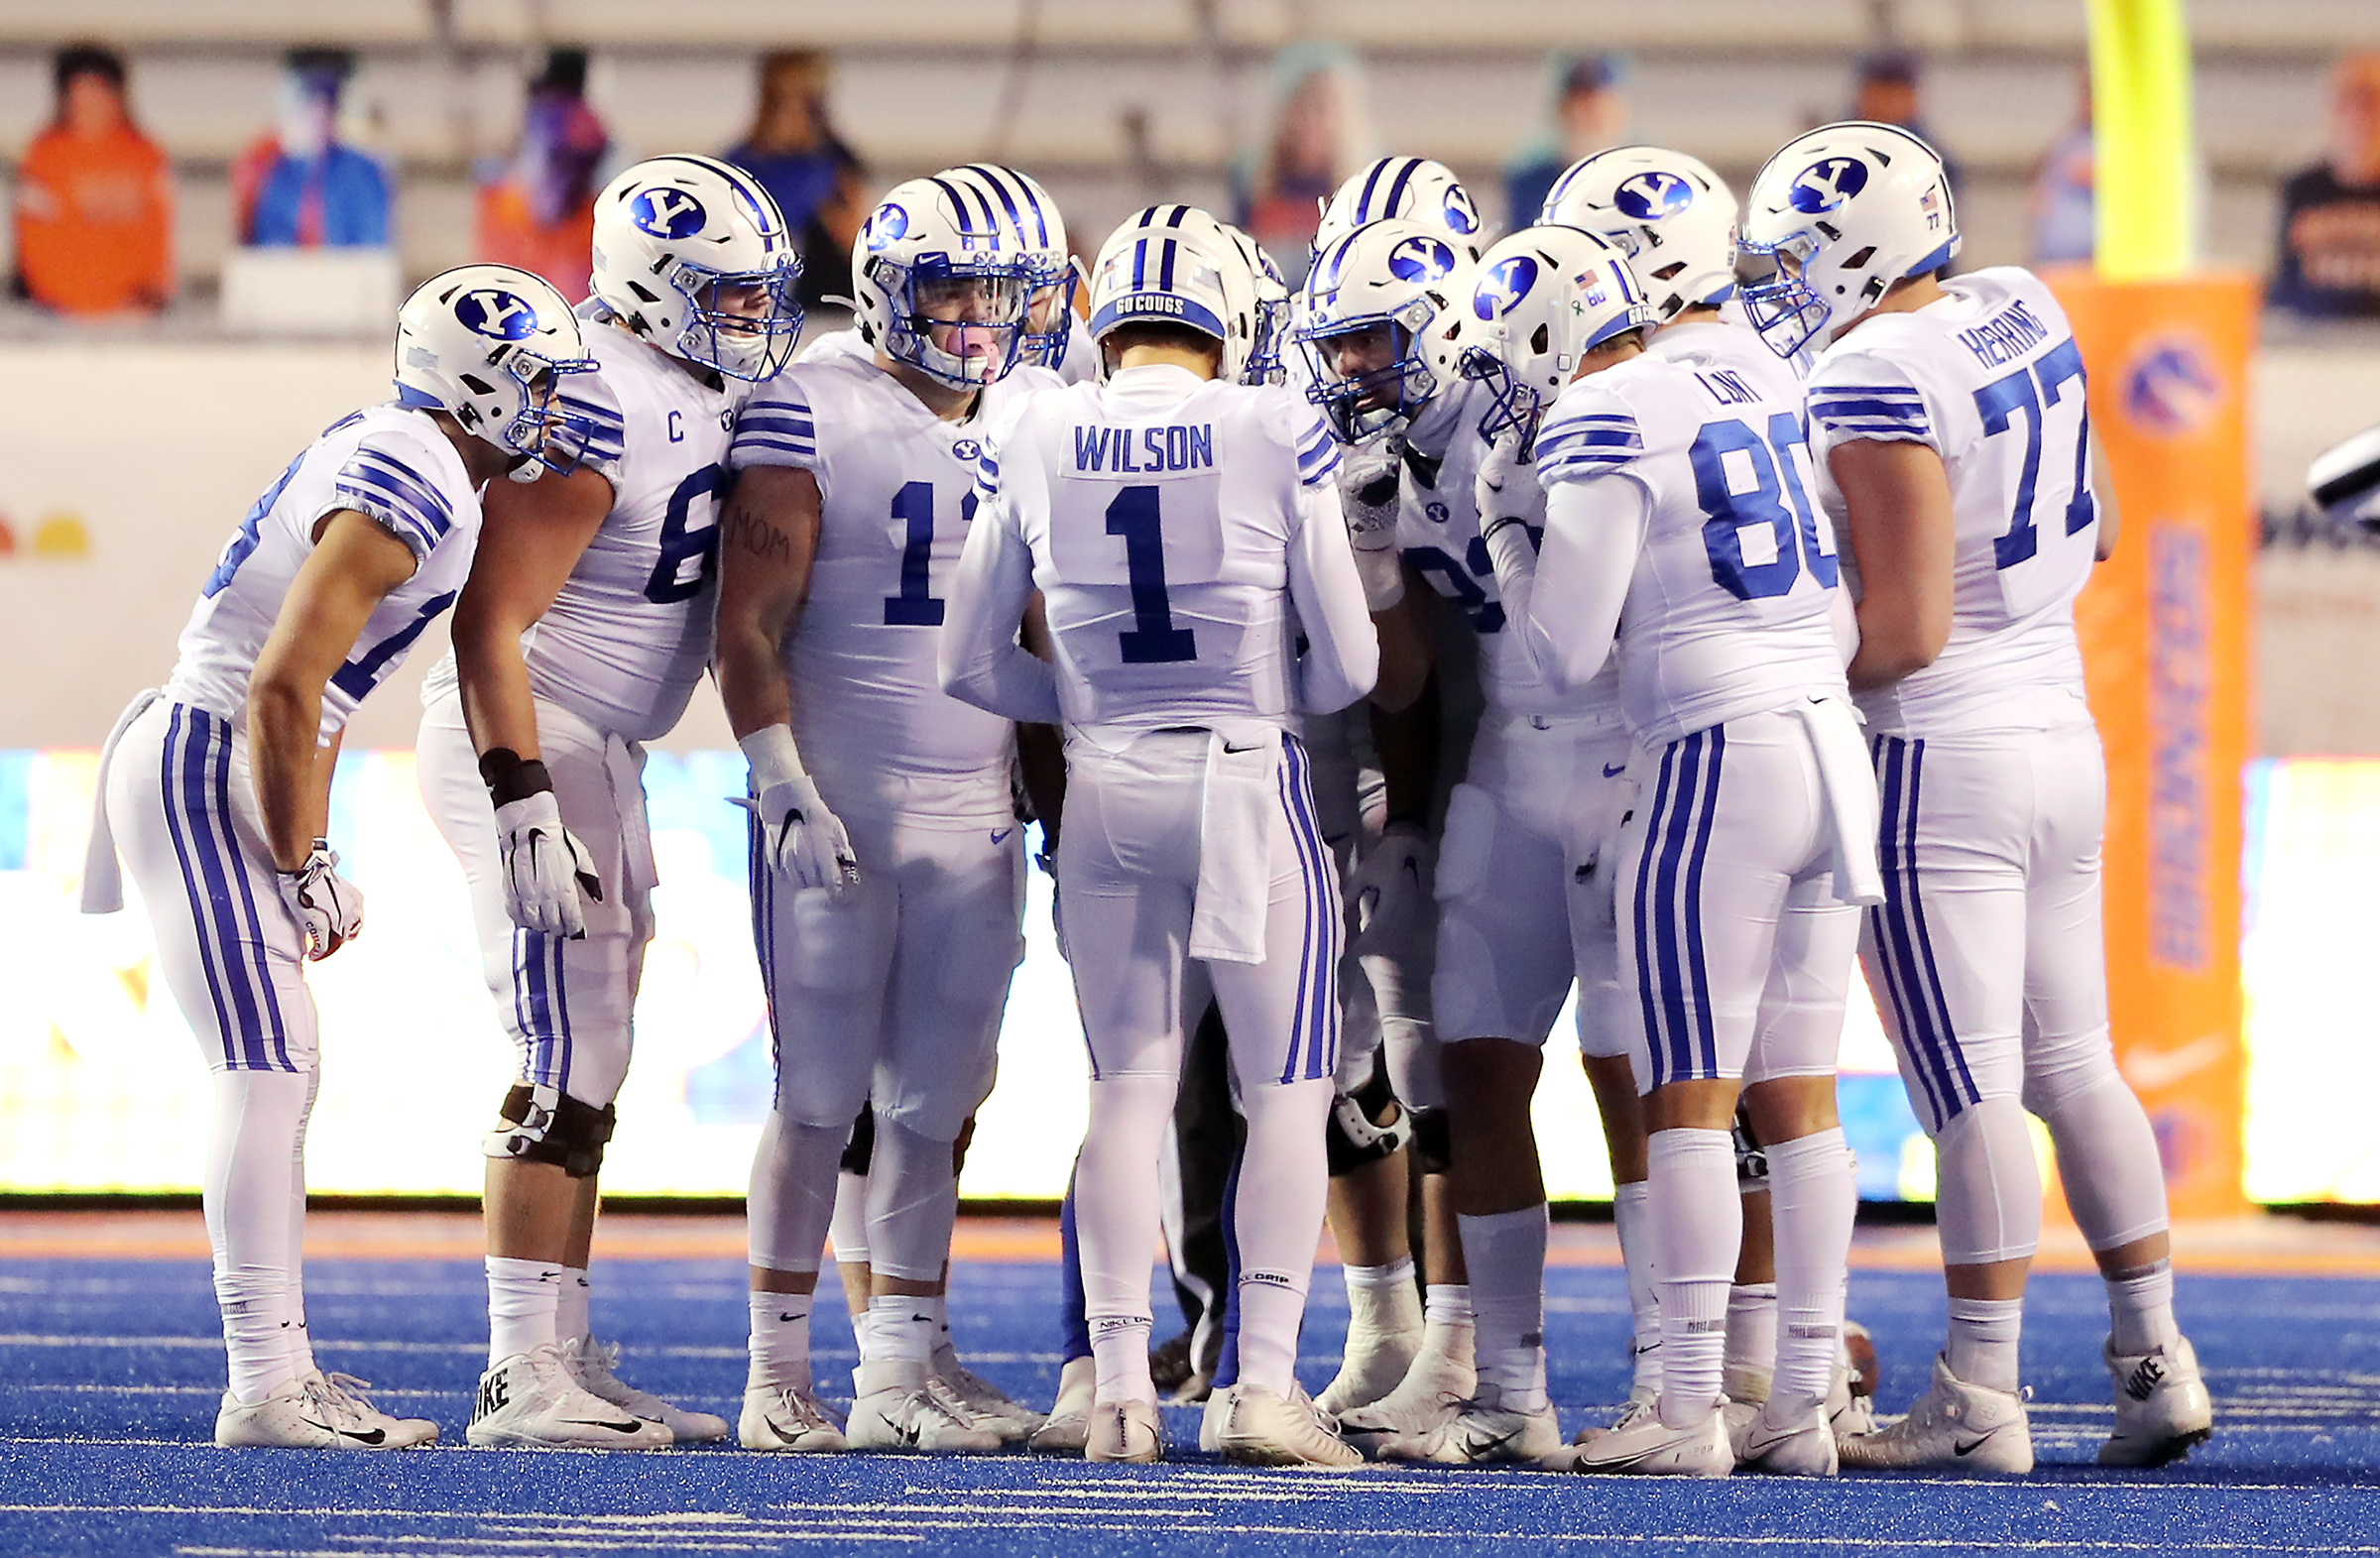 杨百翰 Cougars quarterback Zach Wilson (1) calls a play in the huddle as BYU 和 Boise State play a college football game at Albertsons Stadium in Boise on Friday, Nov. 6, 2020. BYU won 51-17.